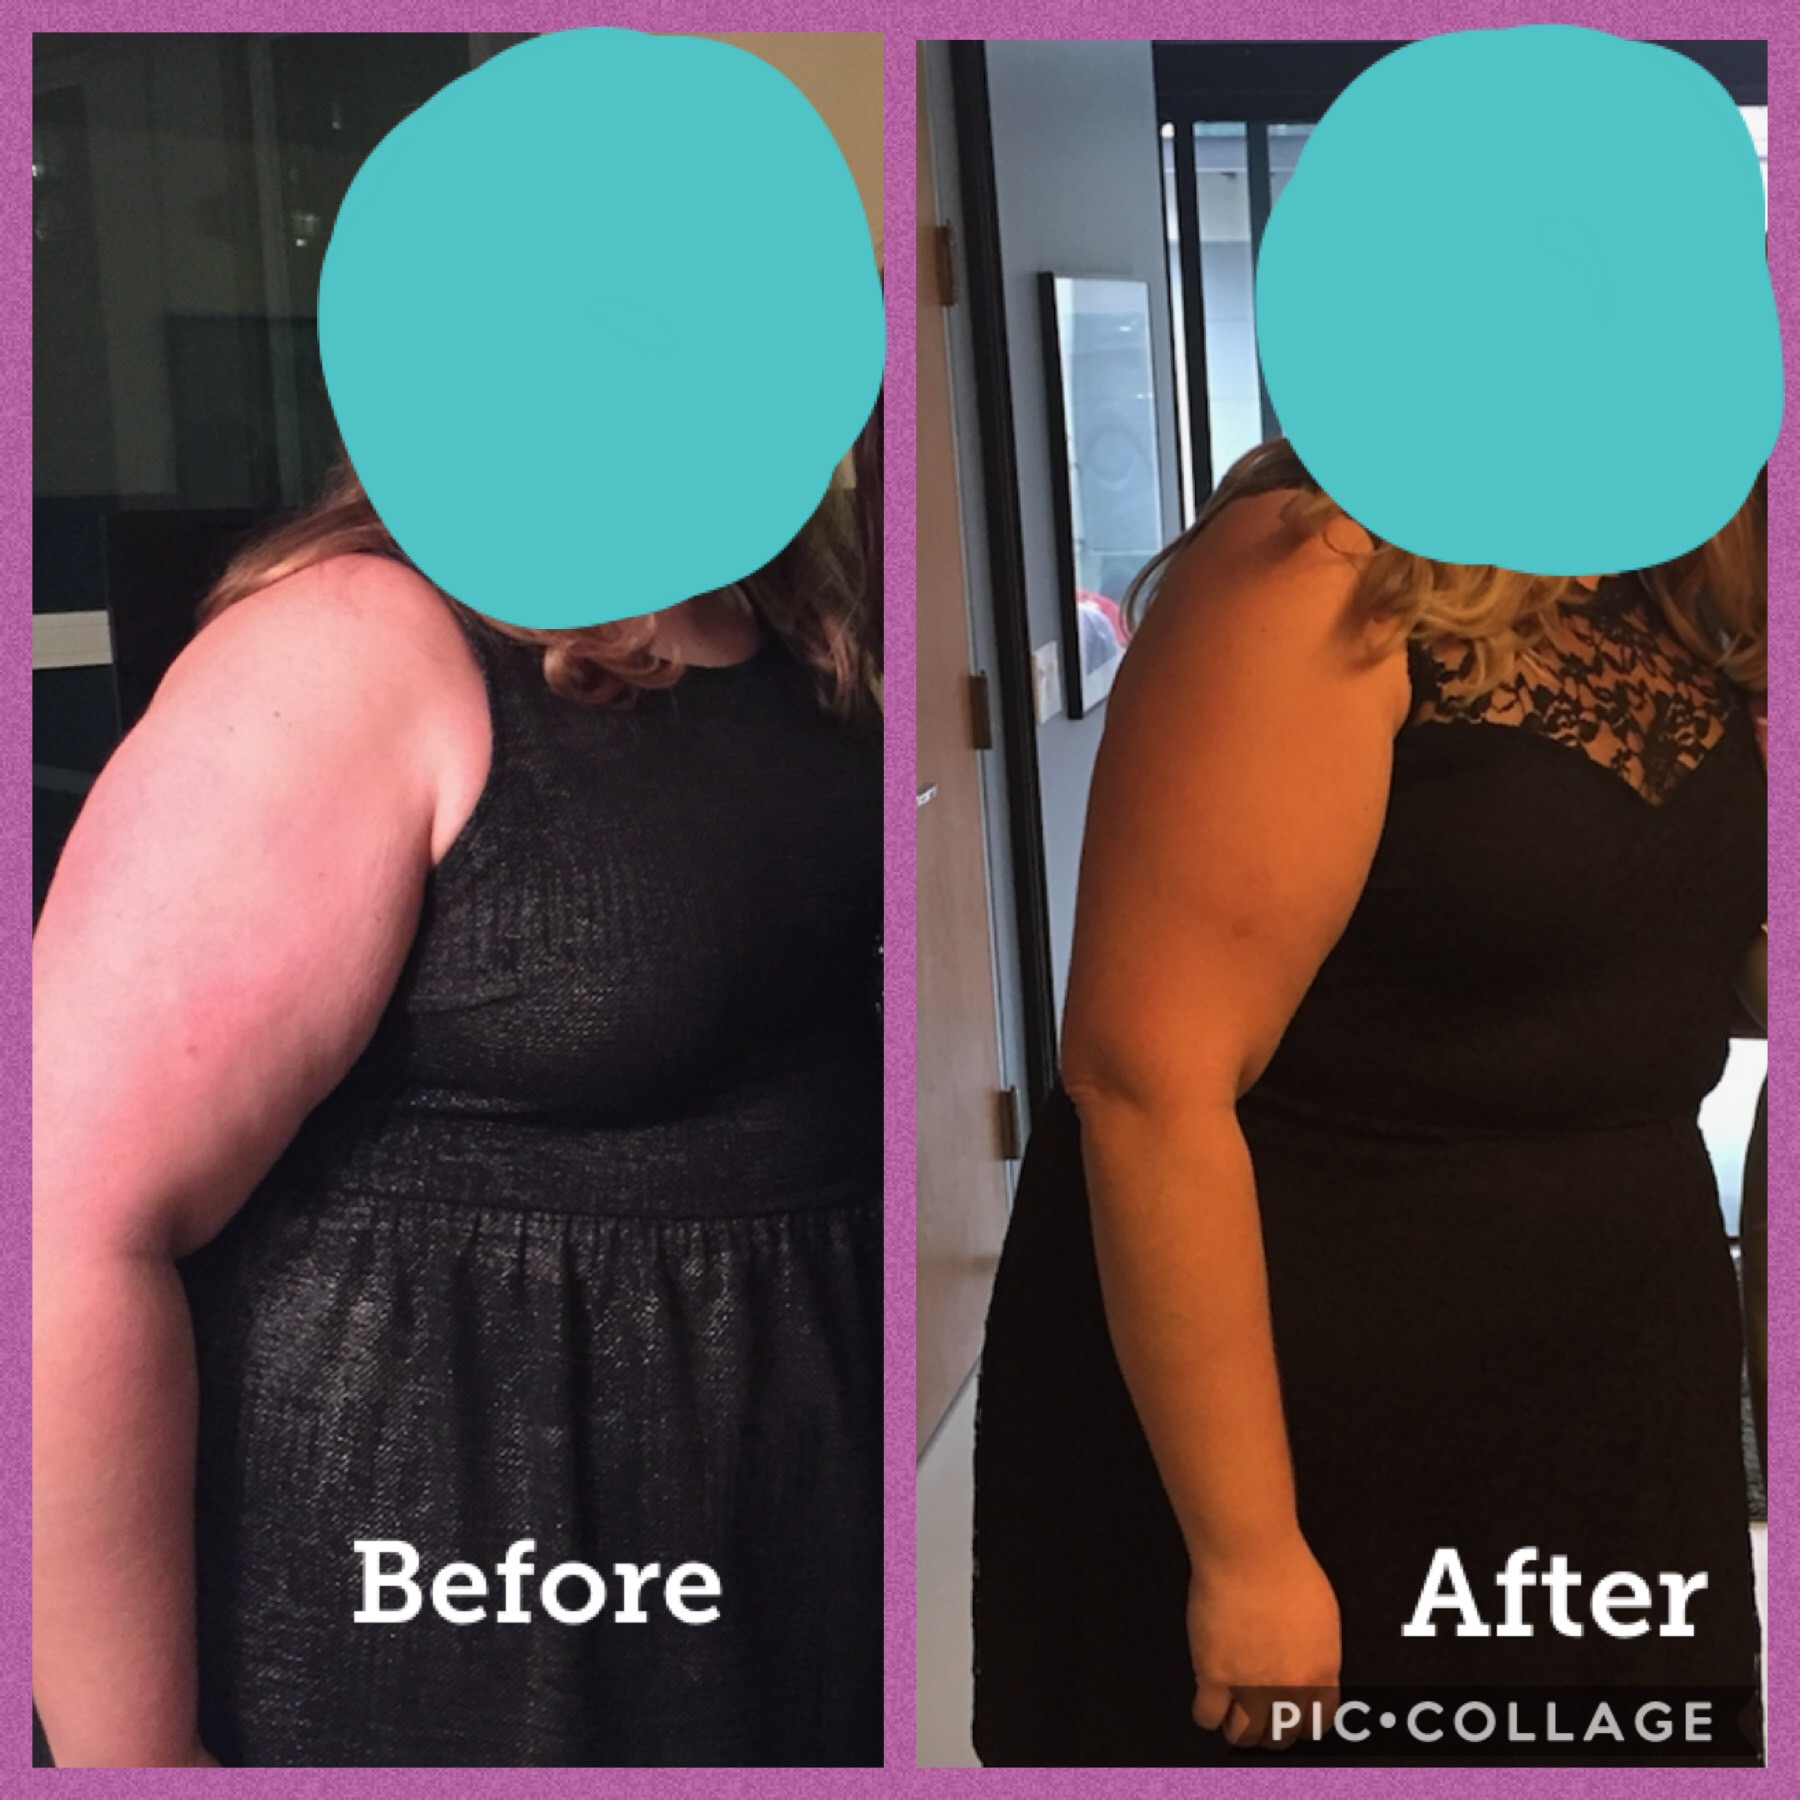 it's amazing to see the transformation of this client! We are still working together, and i'm excited to see how amazing she looks and feels at the end of the year!